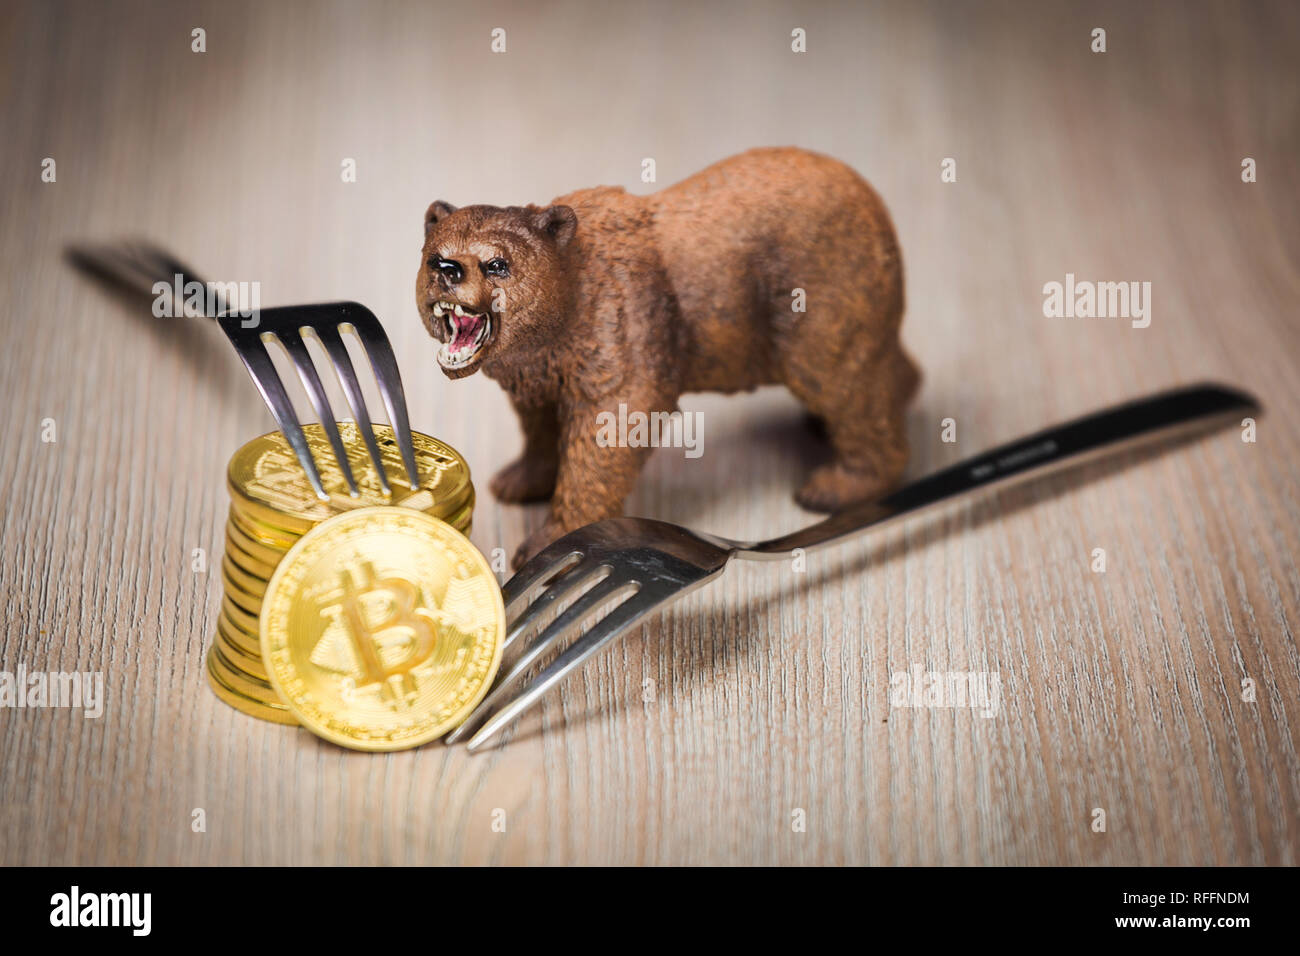 Cryptocurrency bitcoin bear figure on a wooden table. Bearish market trend concept Stock Photo